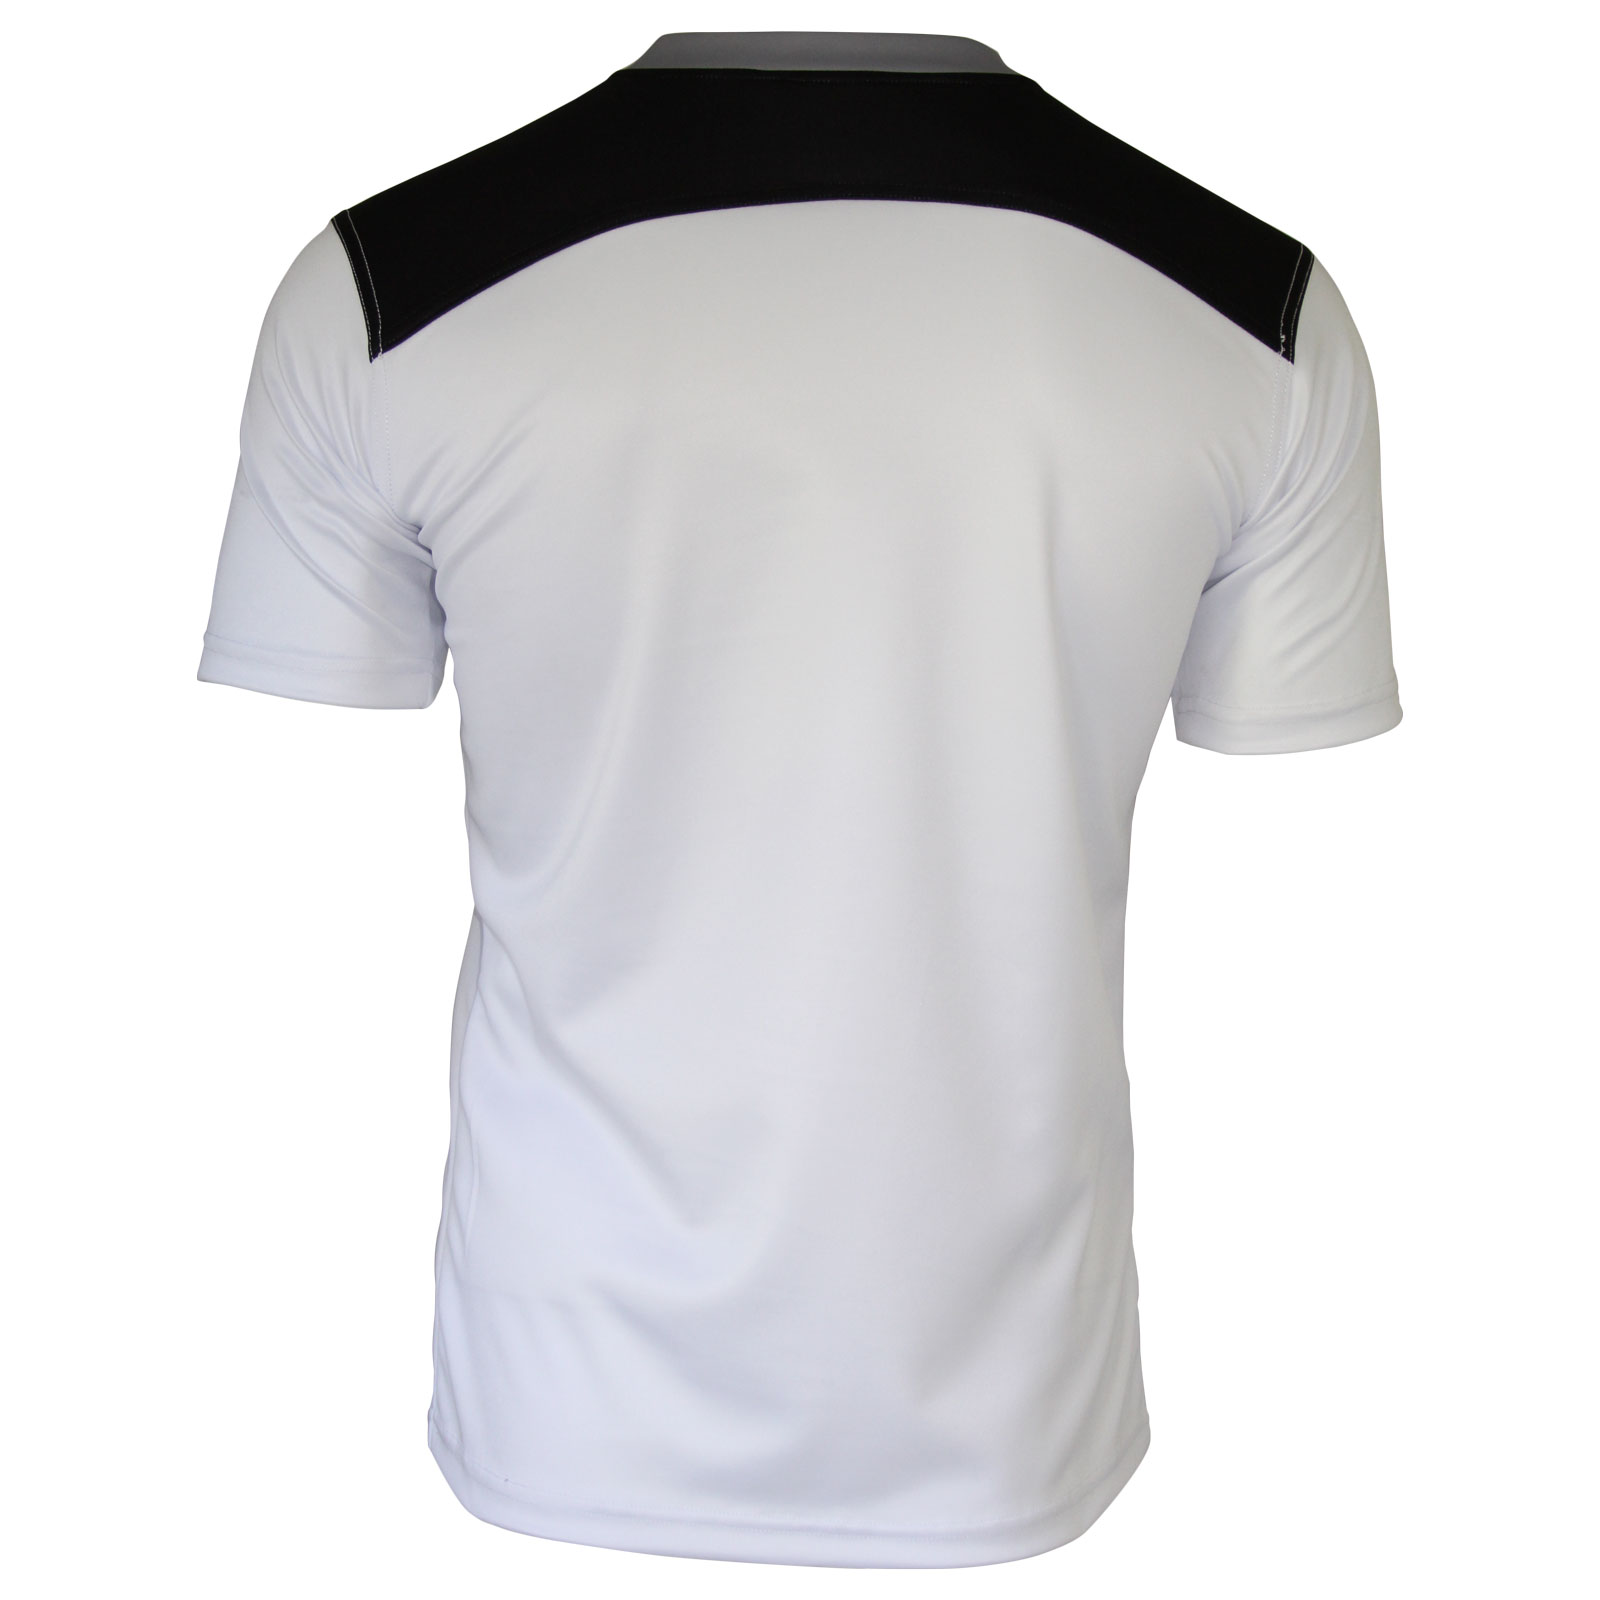 Kinetic Rugby Jersey.